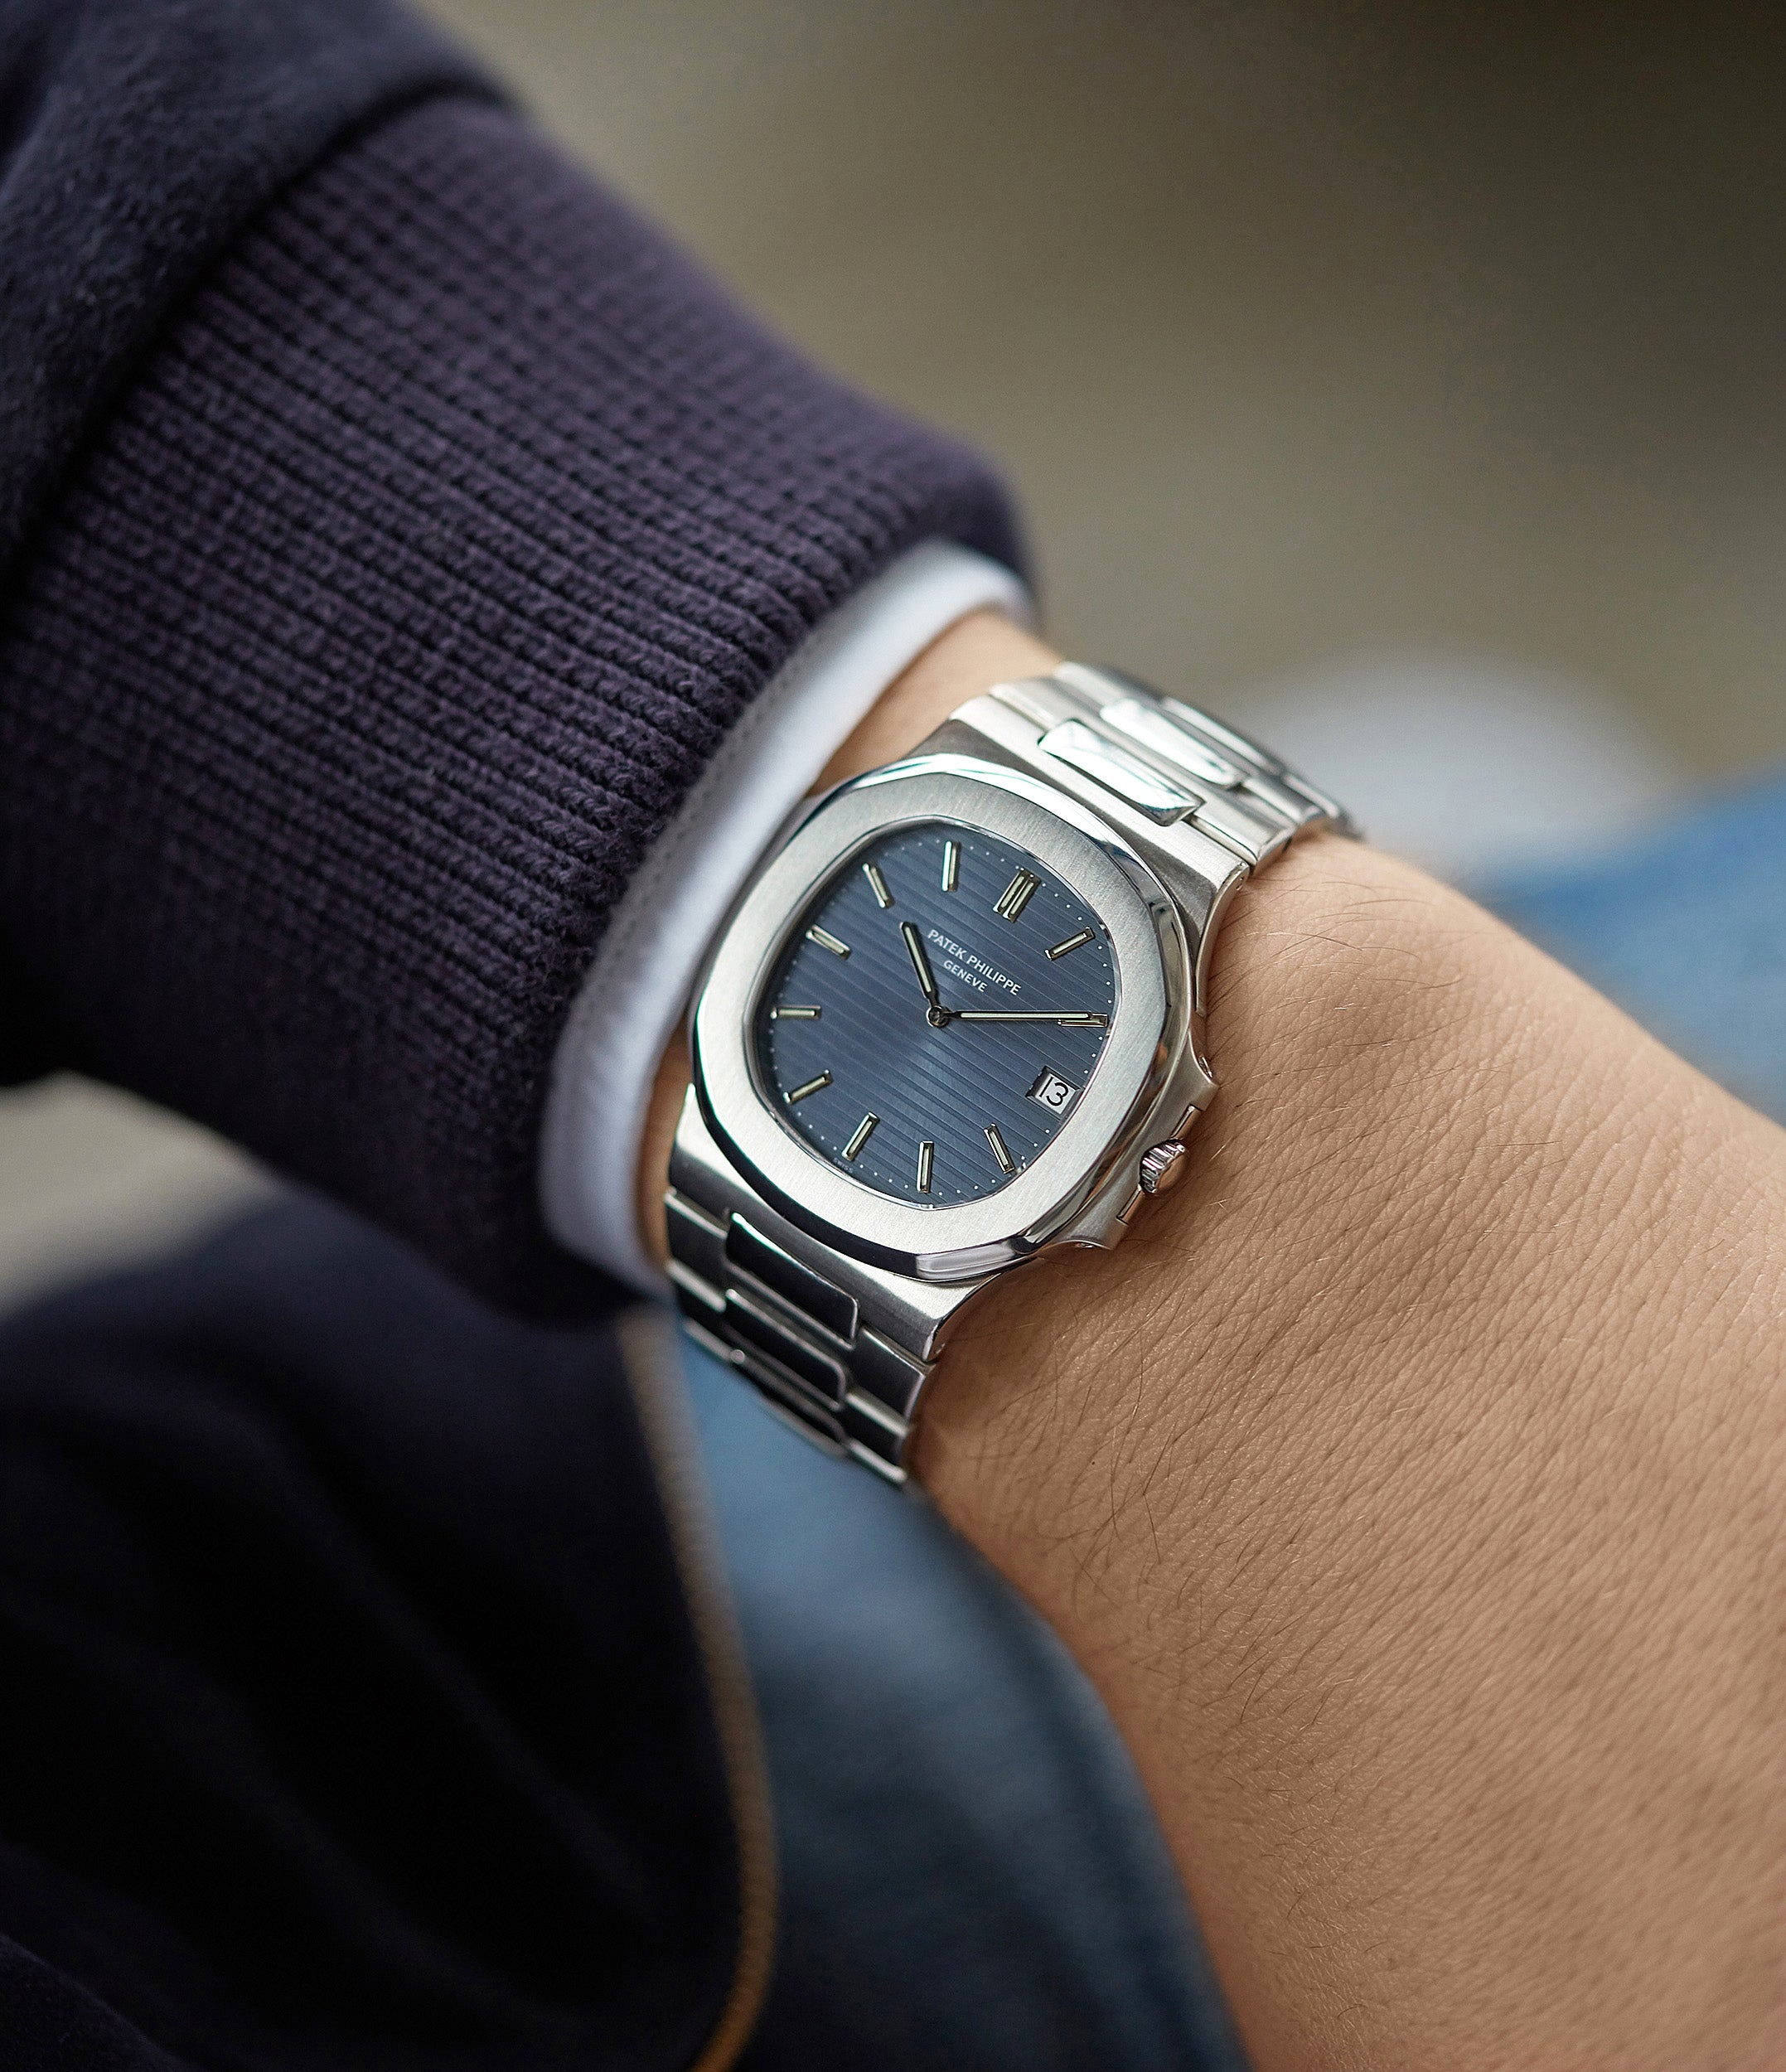 on the wrist Patek Philippe Nautilus 3700/001A steel sport watch full set for sale online at A Collected Man London UK specialist of rare vintage watches